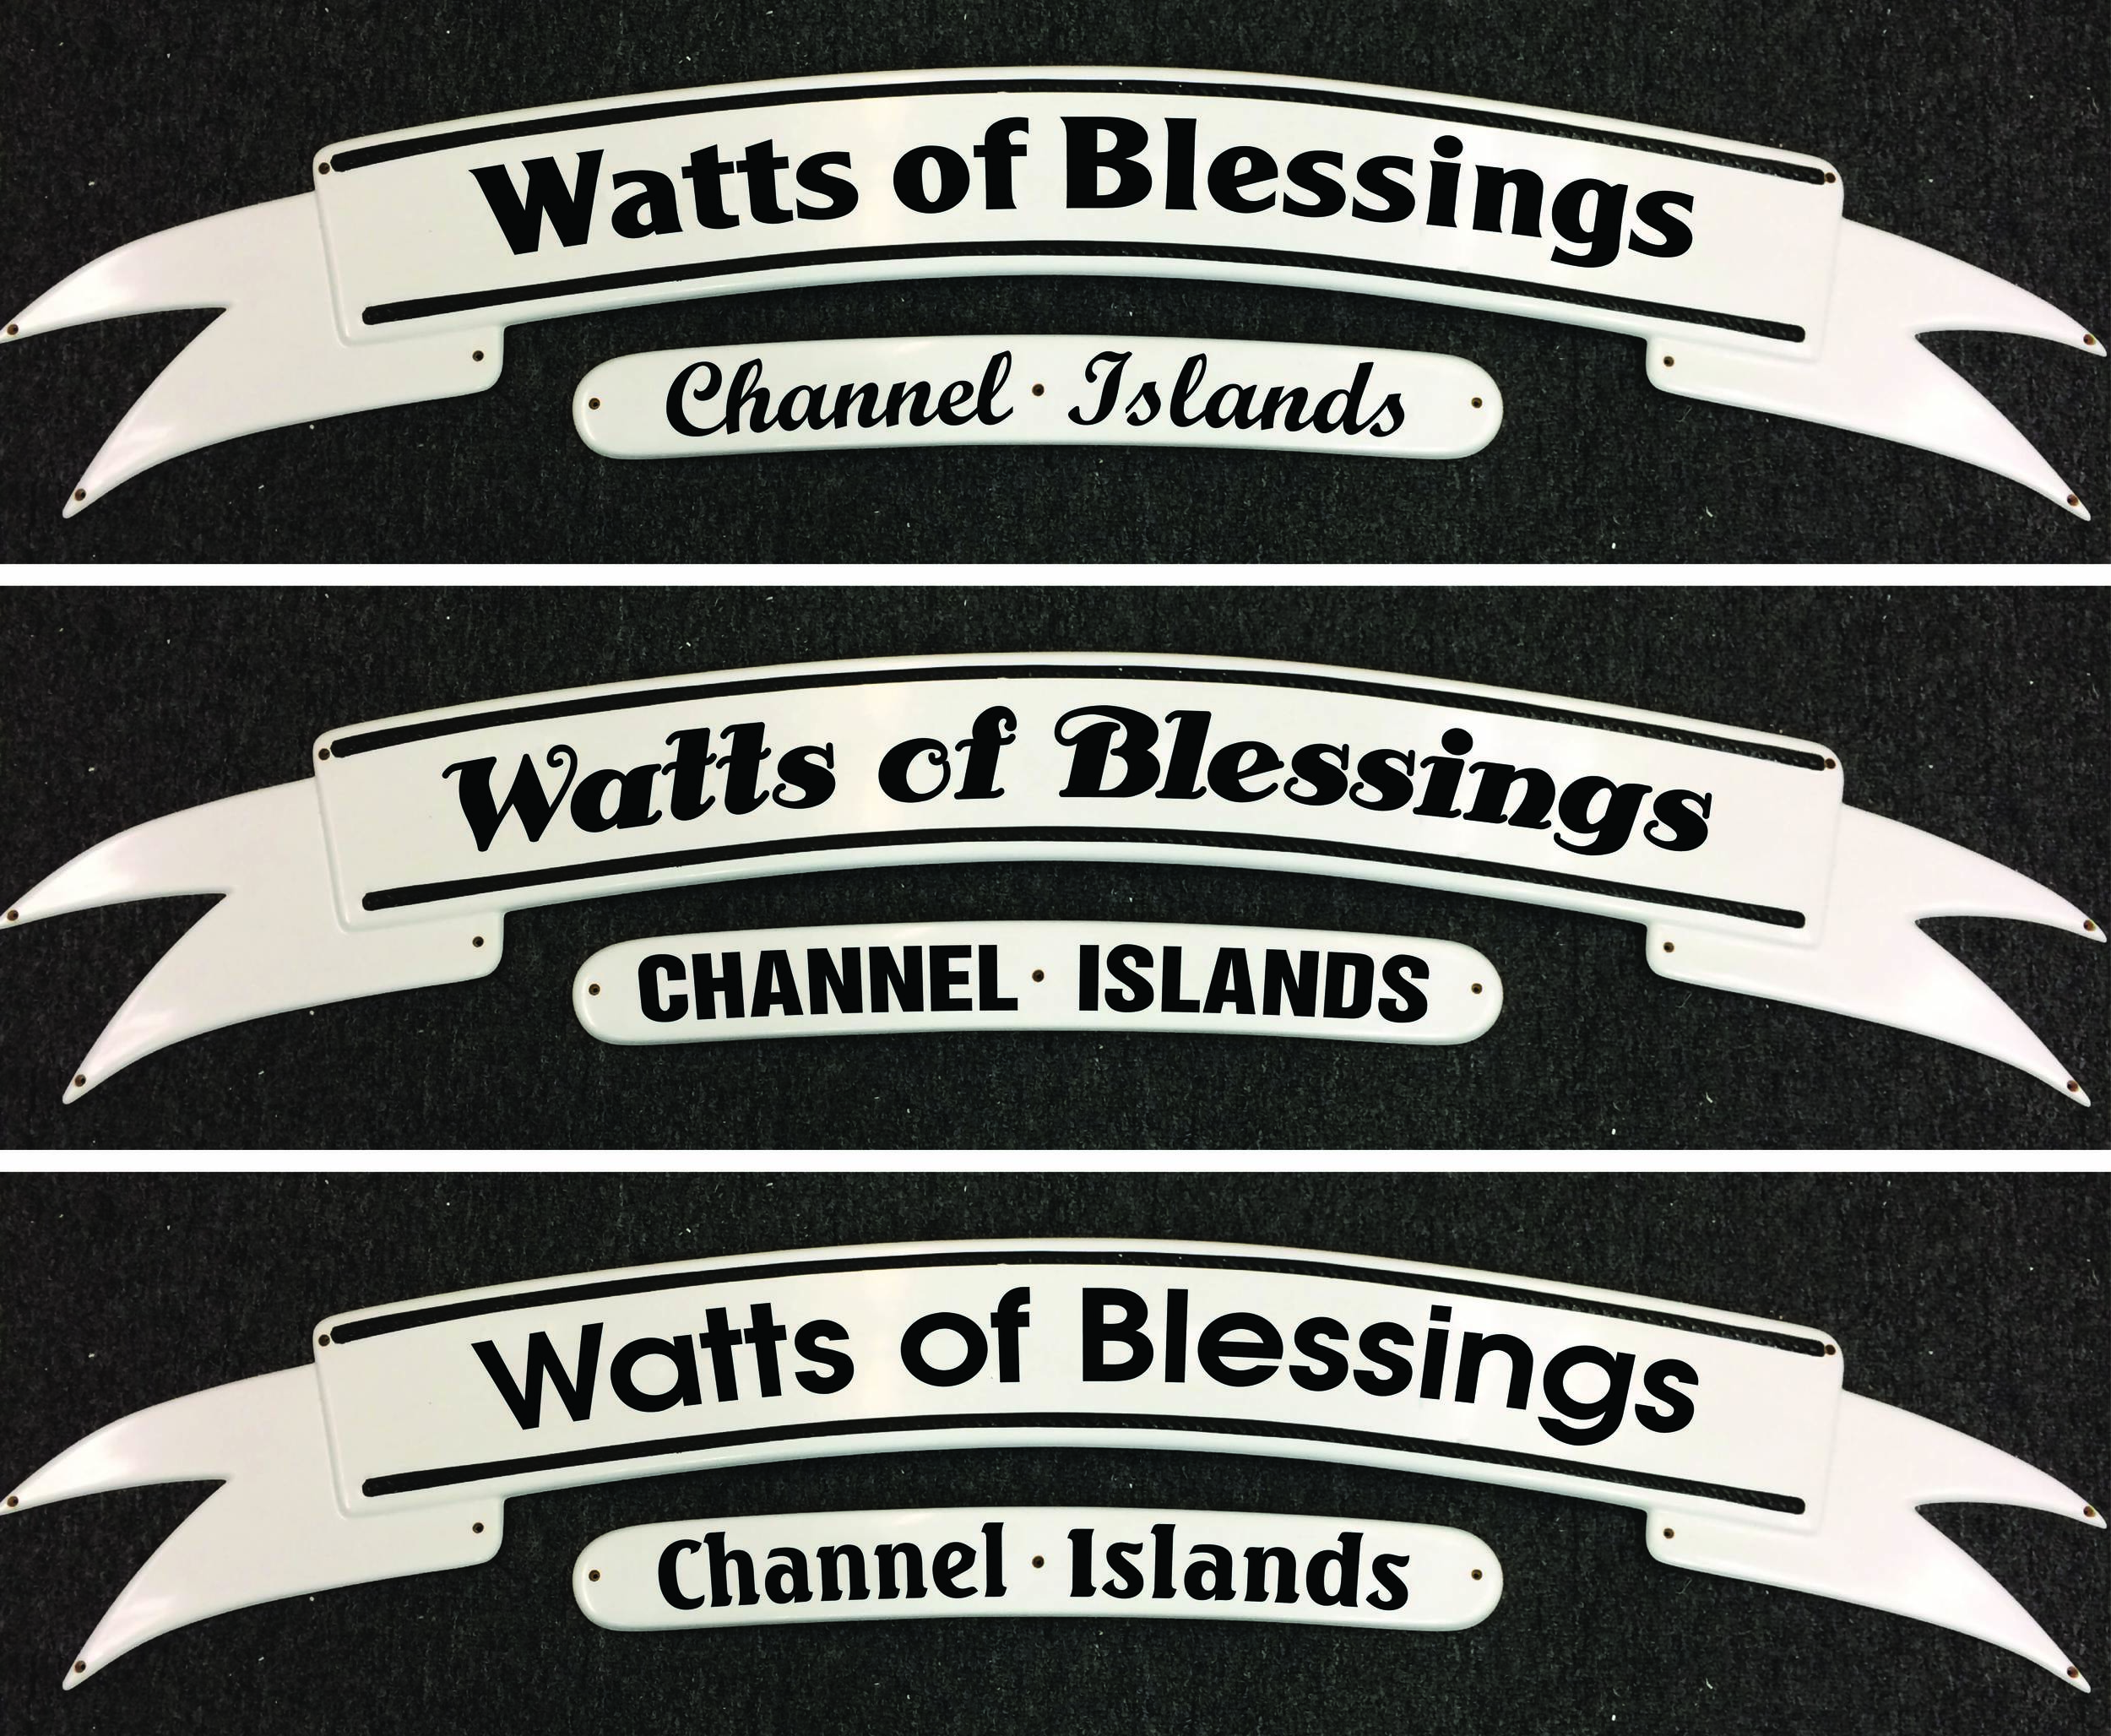 Watts of Blessings-01.jpg